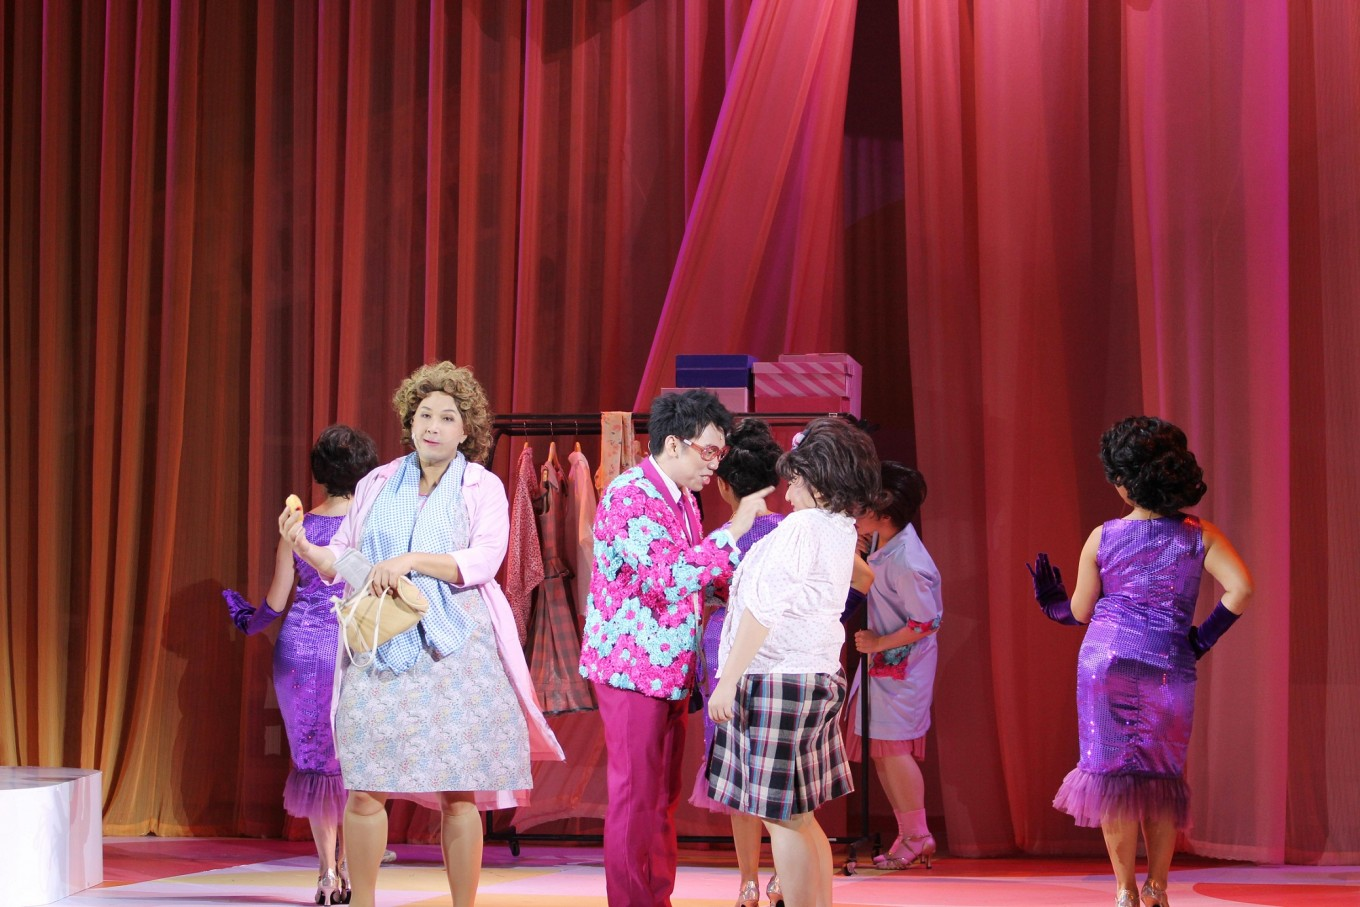 Indonesian take on cult classic 'Hairspray' hits but also misses